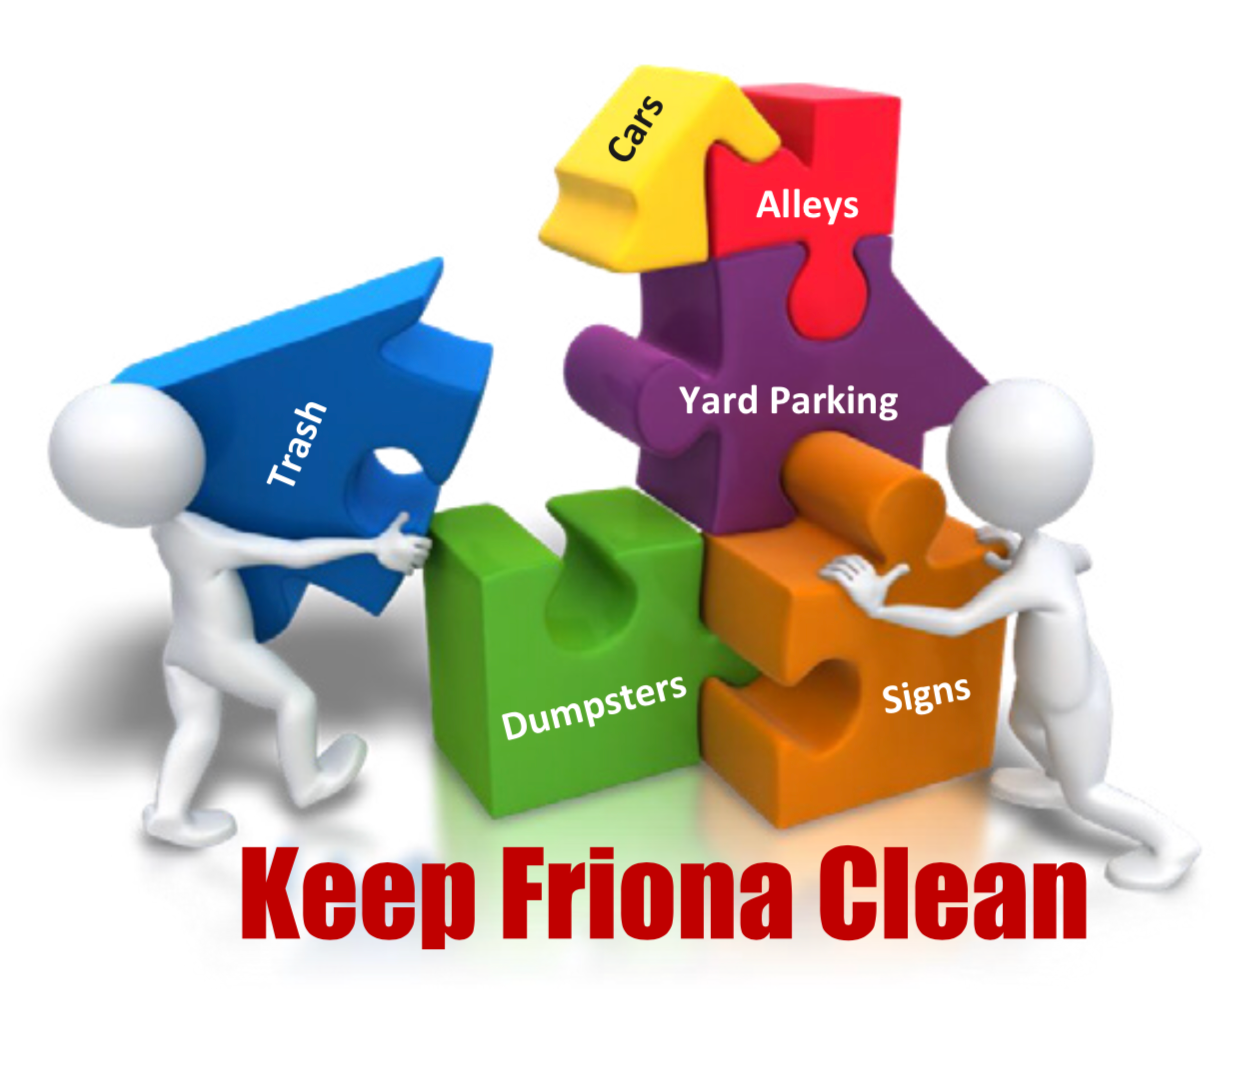 Keep Friona Clean CAMPAIGN  The Keep Friona Clean Campaign was created to remind residents of the importance of waste management and educate the general public about proper trash disposal, sustainability, and how to get involved with eliminating waste in yards, alleys, and around dumpsters.